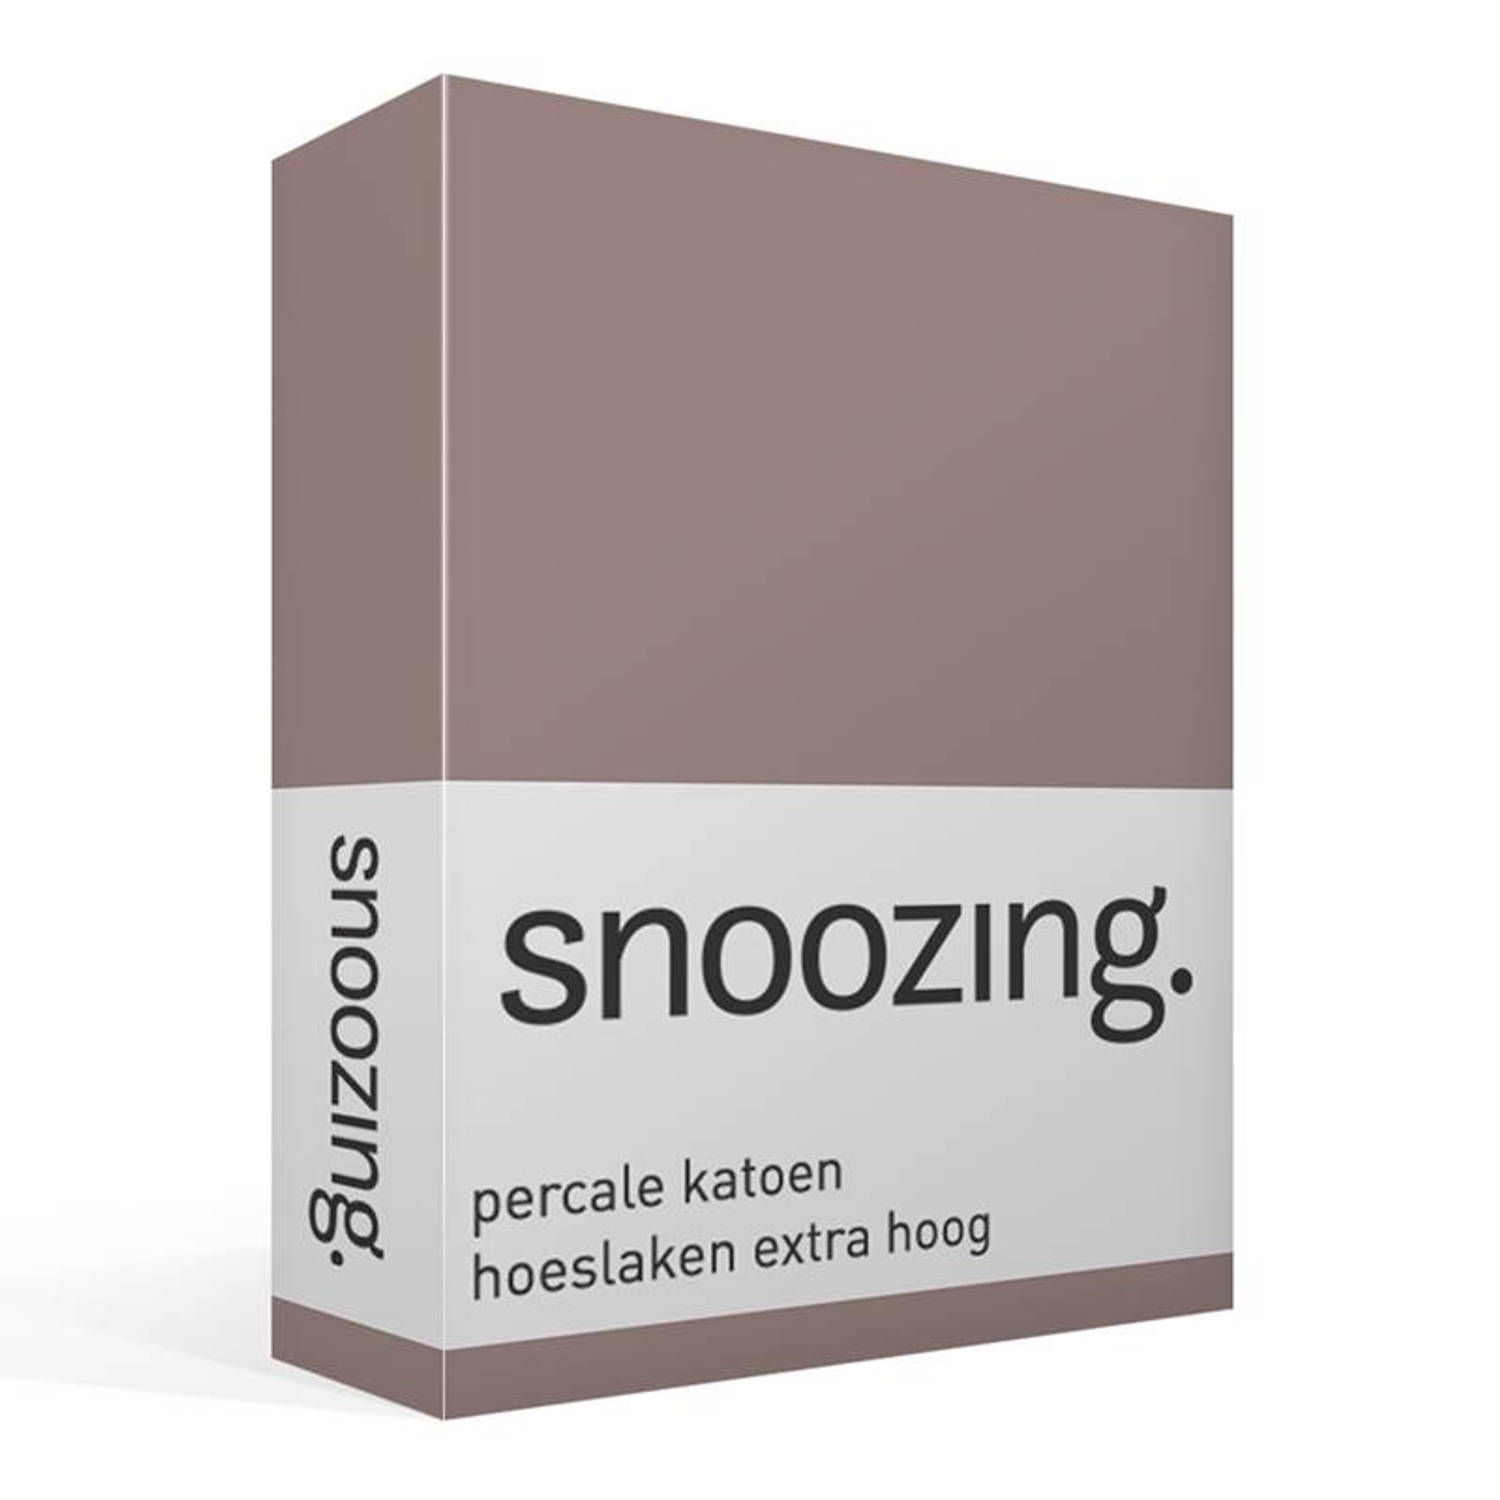 Snoozing - Hoeslaken - Percale Katoen - Extra Hoog - 180x200 - Taupe